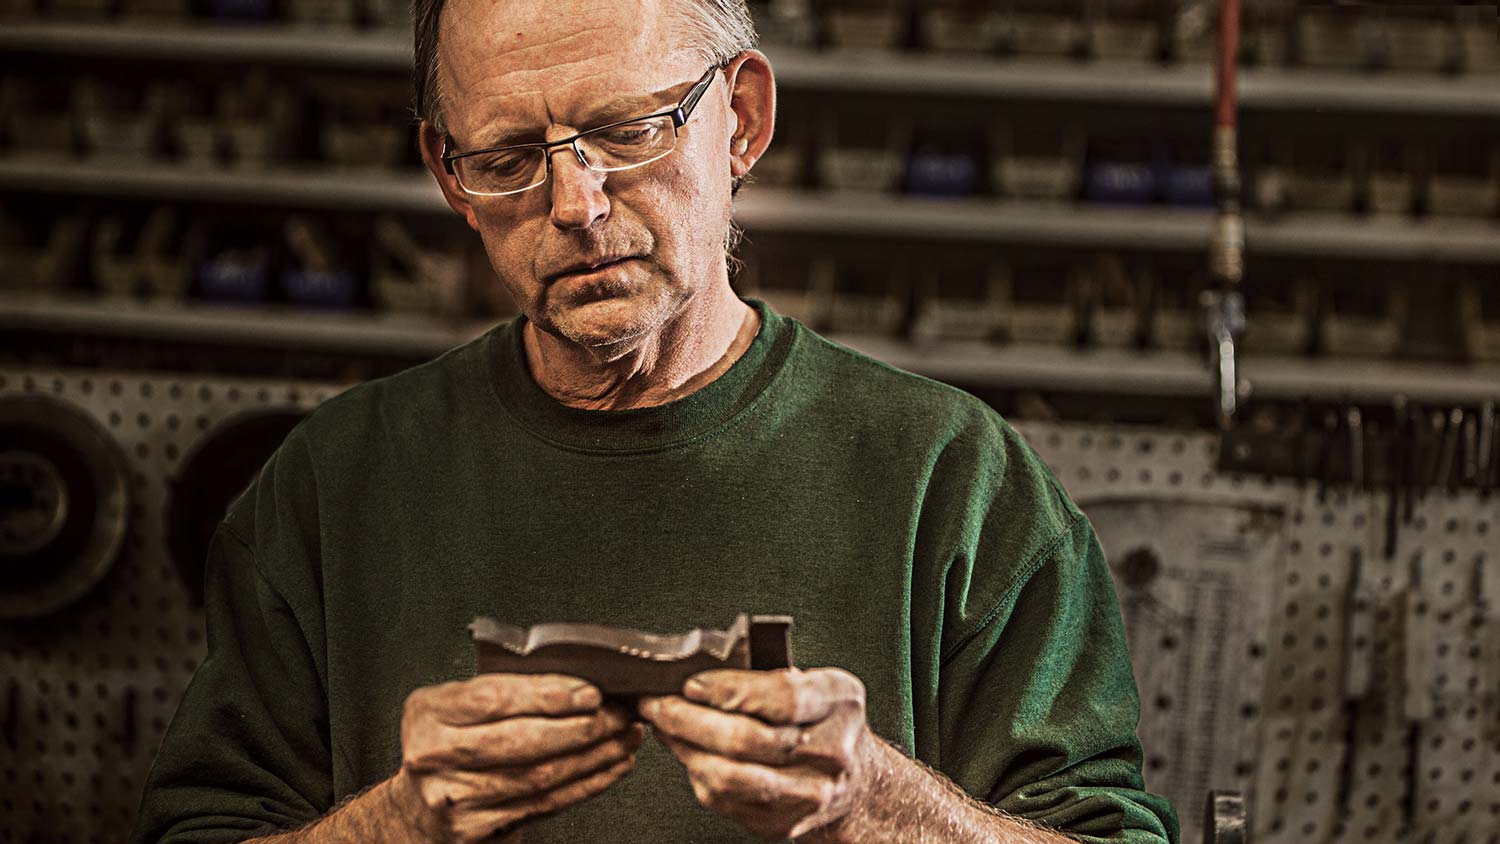 Contemplative employee looking thoughtfully at a moulding sample, framed like an interview